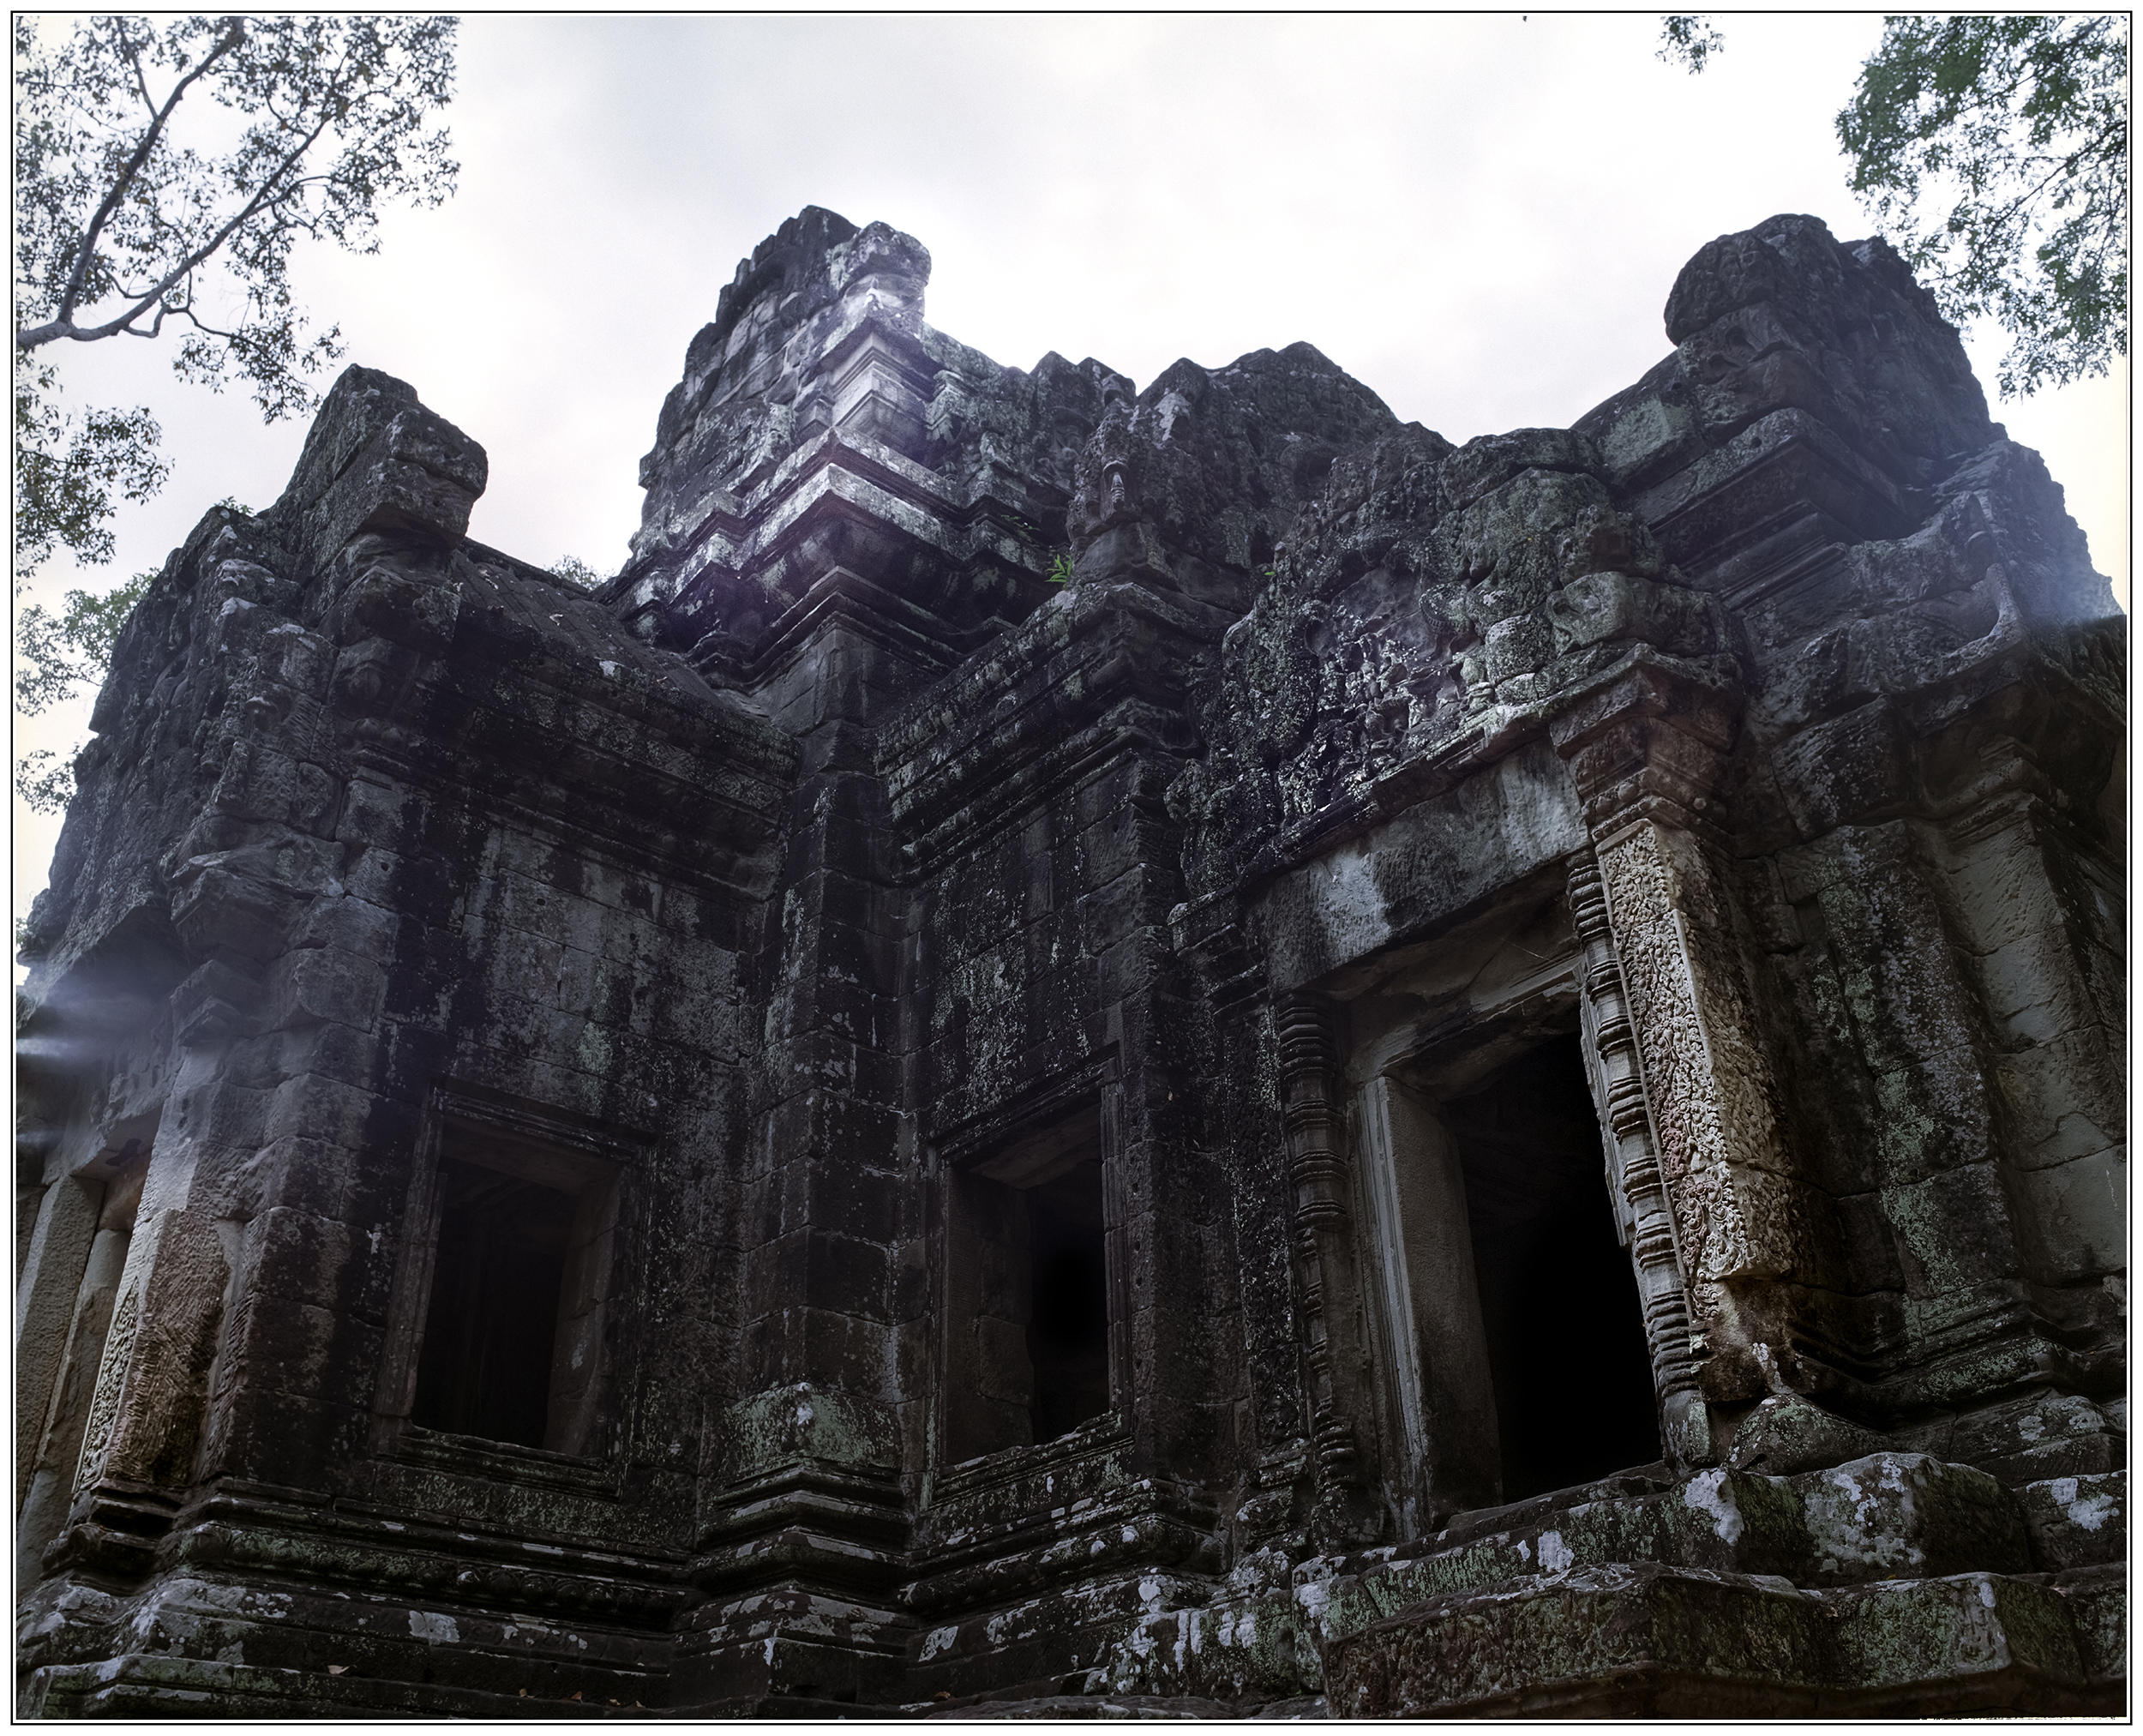 Prasat Baphuon #3 by Roger-Wilco-66